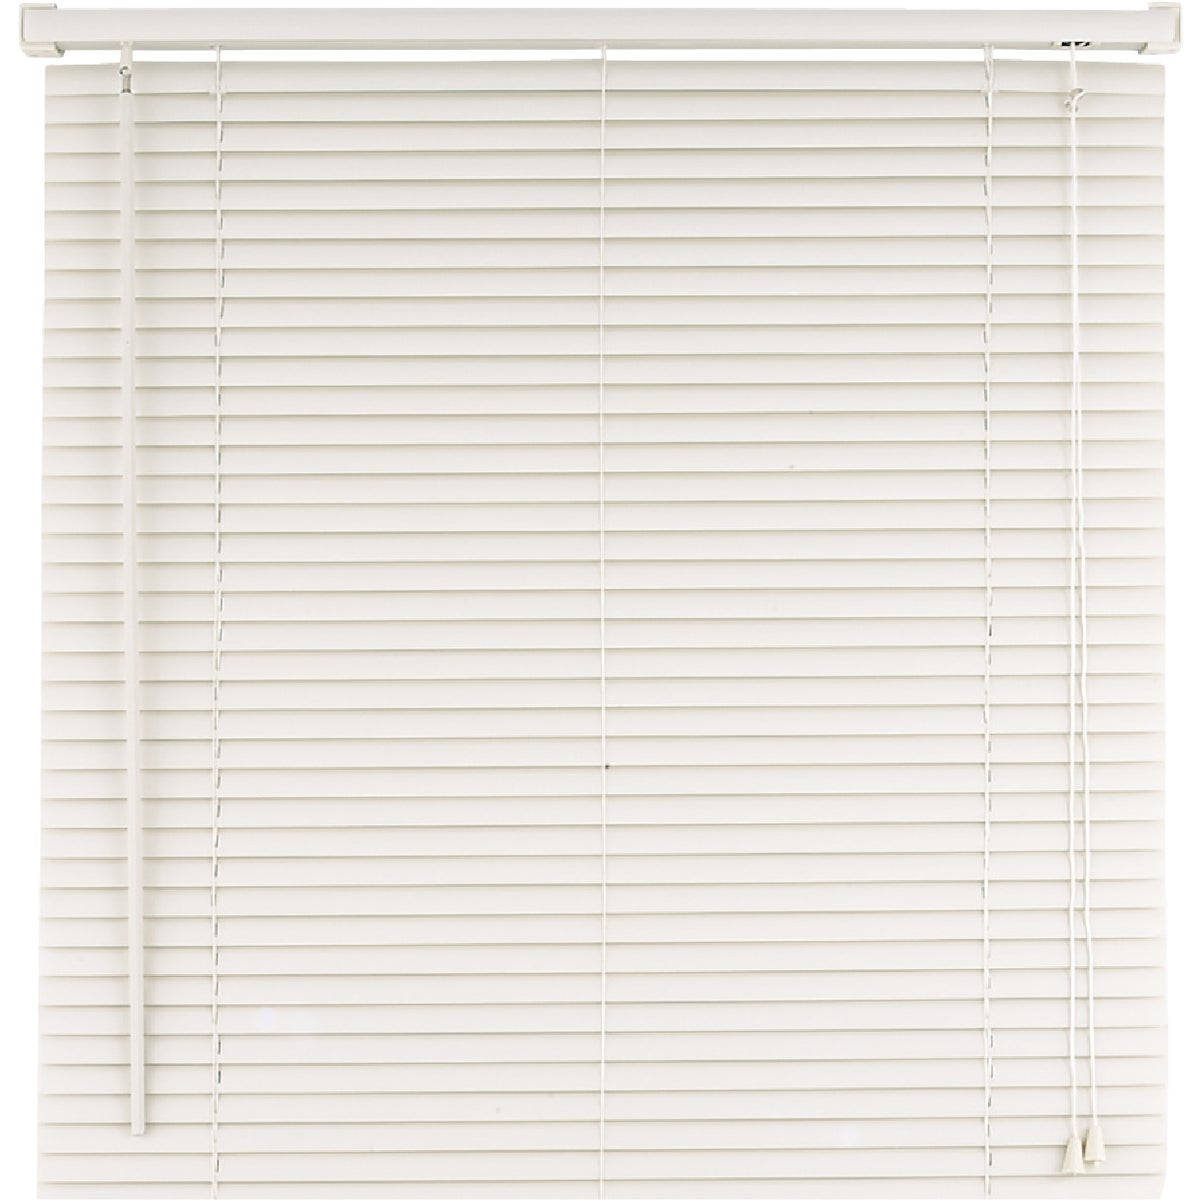 31X72 WHITE MINI BLIND - 3172W by Lotus Wind Incom